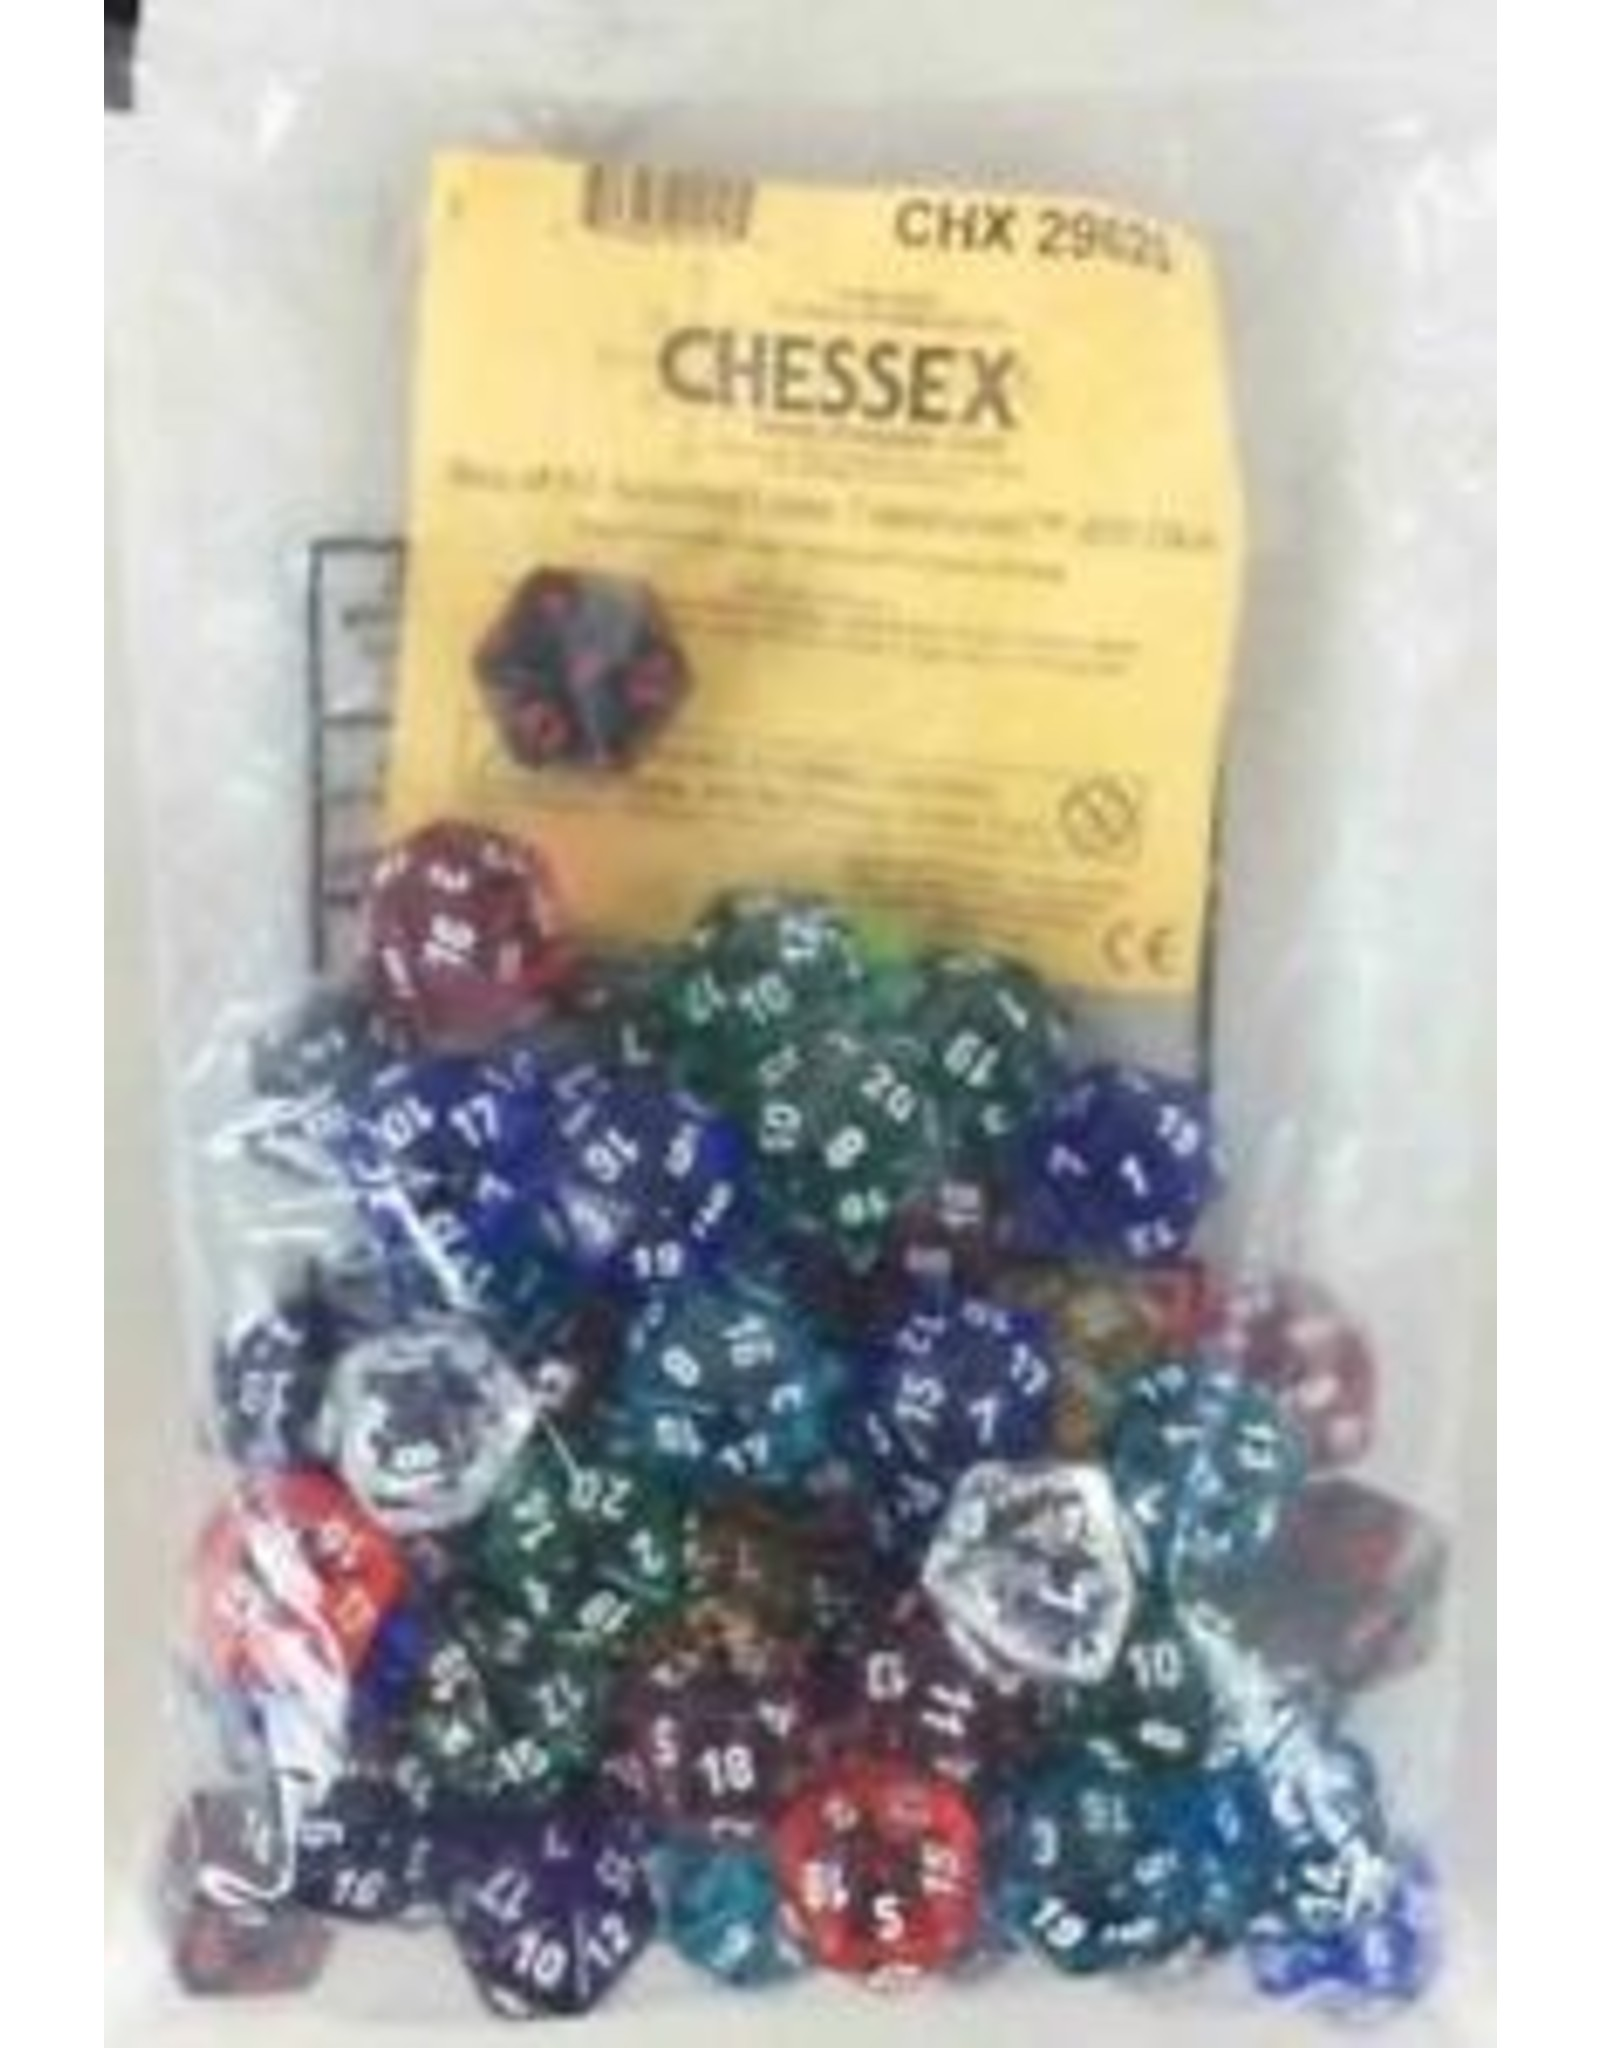 Chessex Translucent: Poly D20 Assorted Limited Edition Bag of Dice (50)